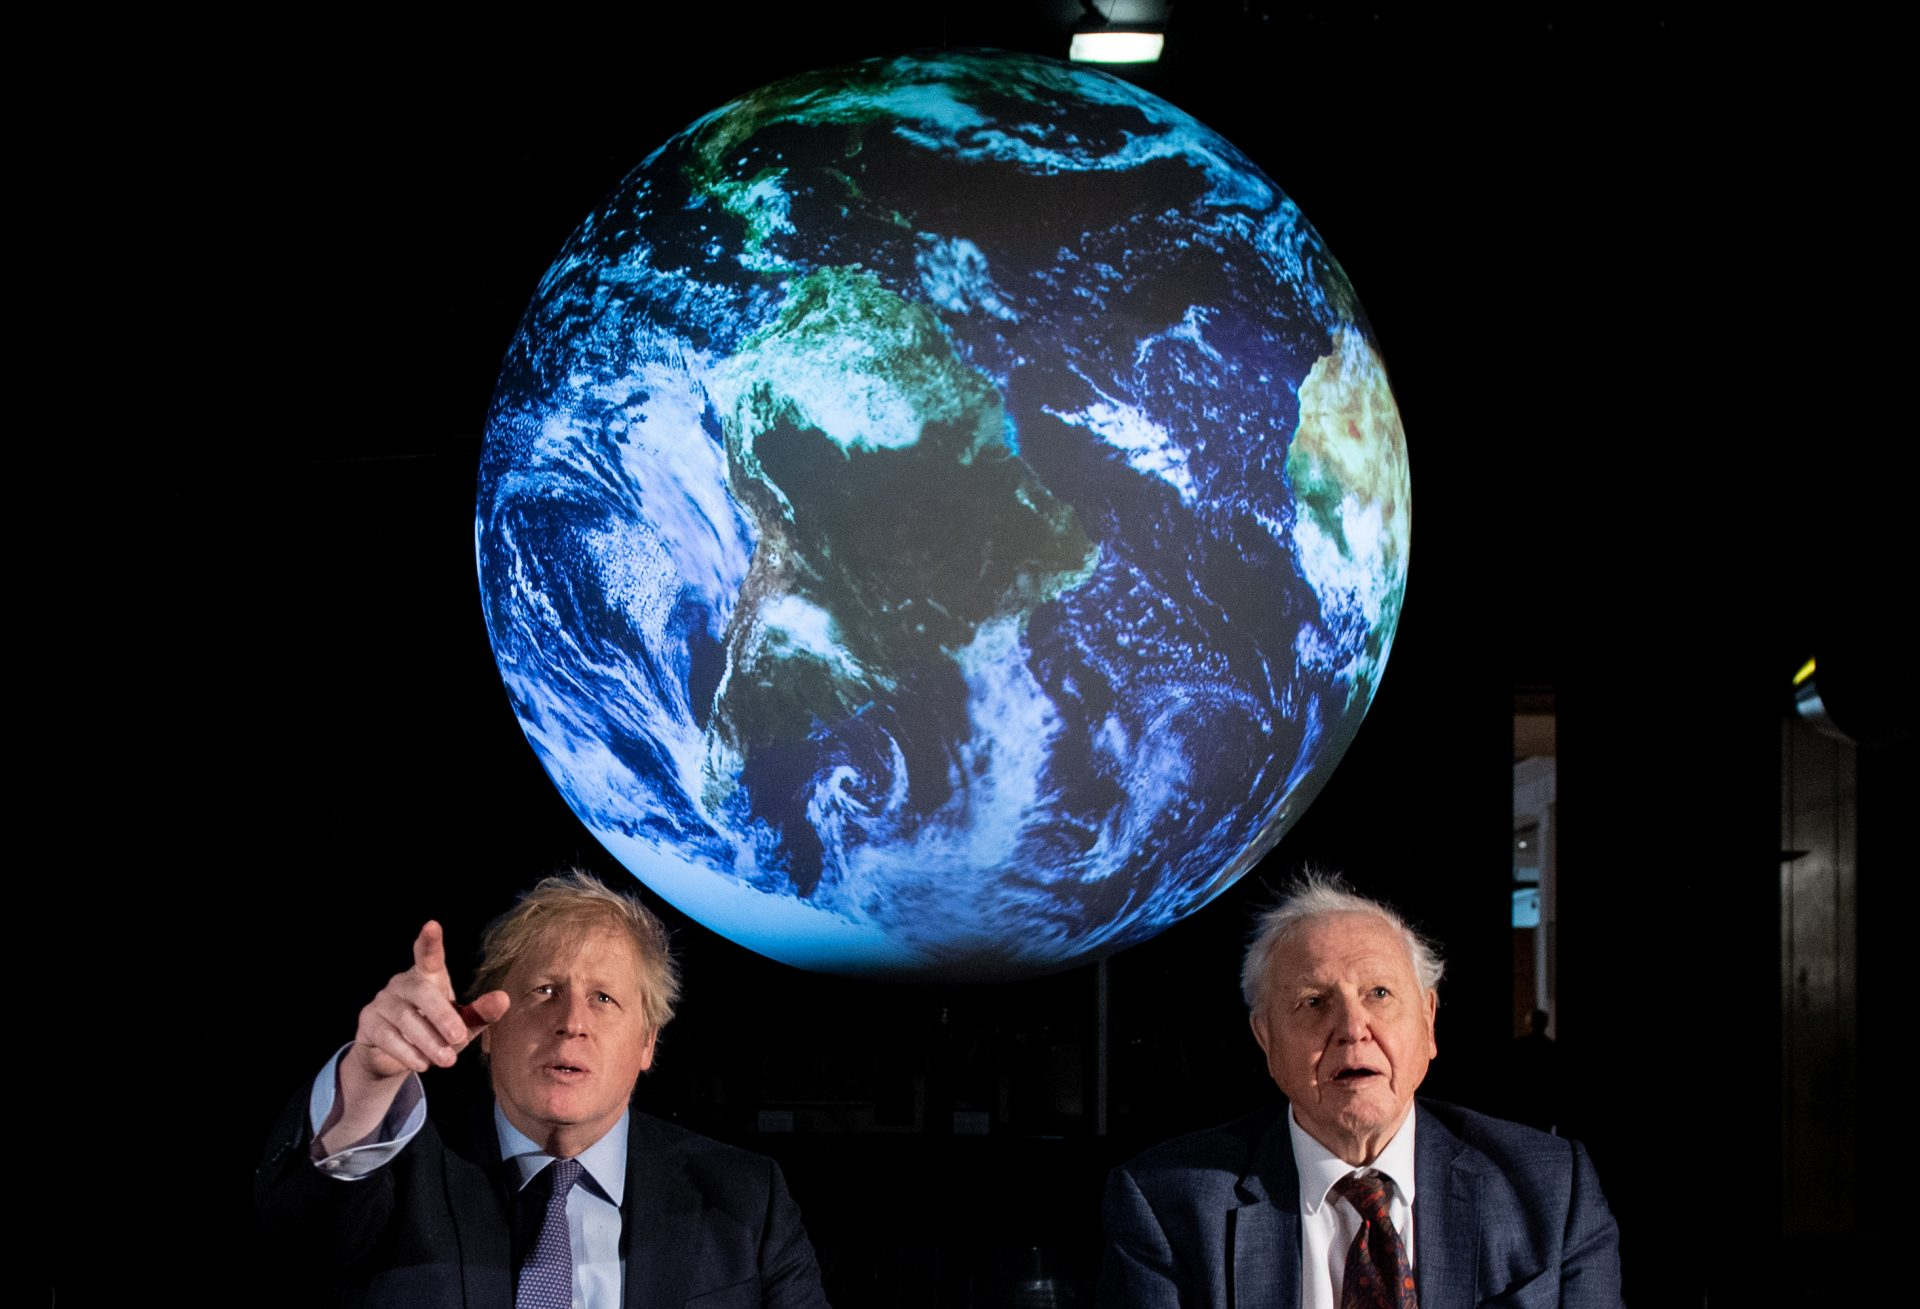 The Prime Minister Boris Johnson (left) and Sir David Attenborough at the launch of the next COP26 UN Climate Summit at the Science Museum, London. Photograph: Chris J Ratcliffe/PA Archive/PA Images.